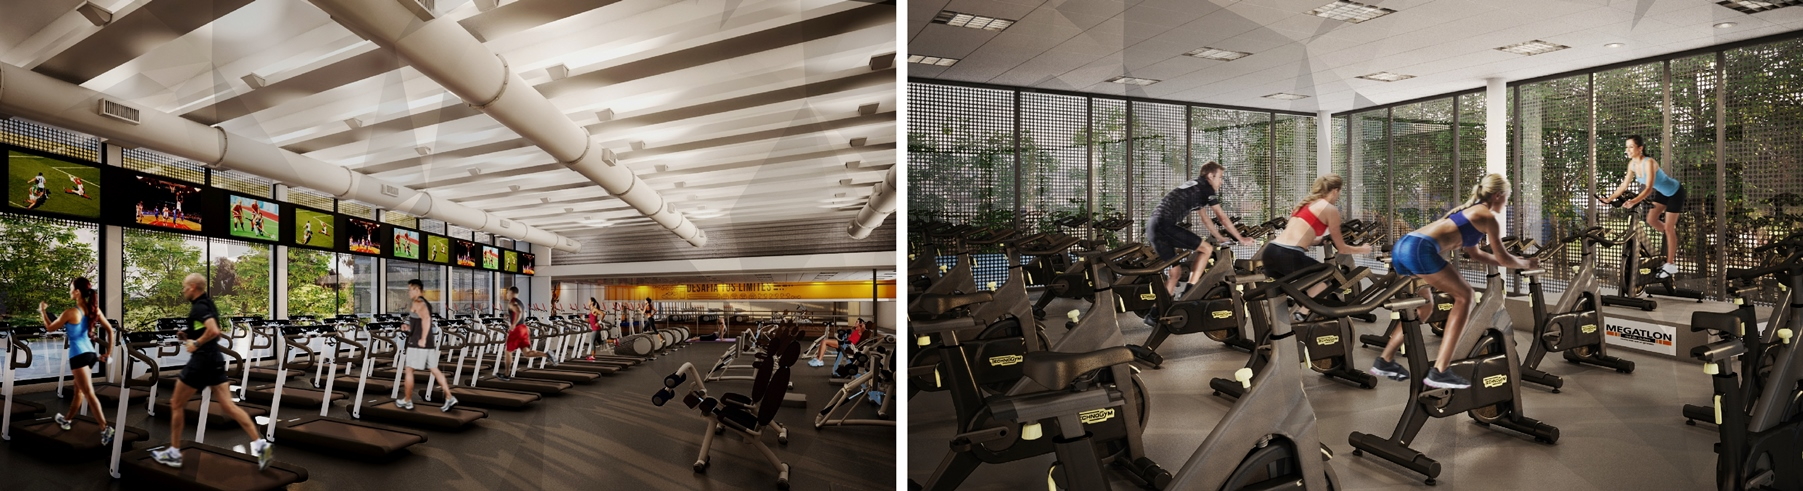 Gimnasio-Country-01